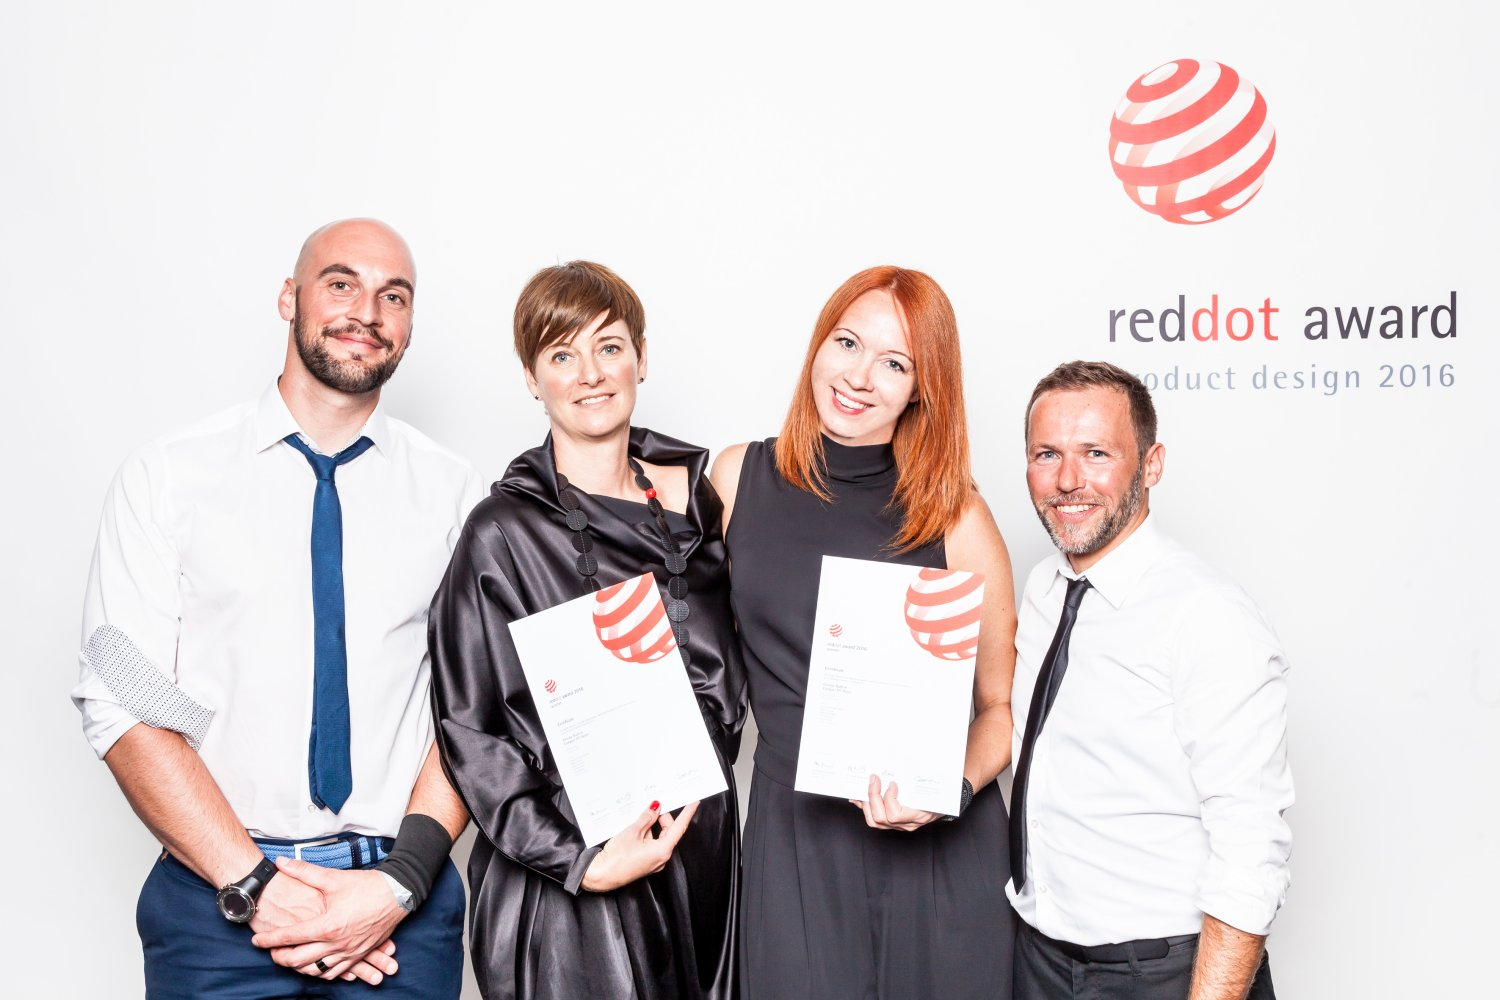 Four prestigious Red Dot design awards for Gorenje Group products this year